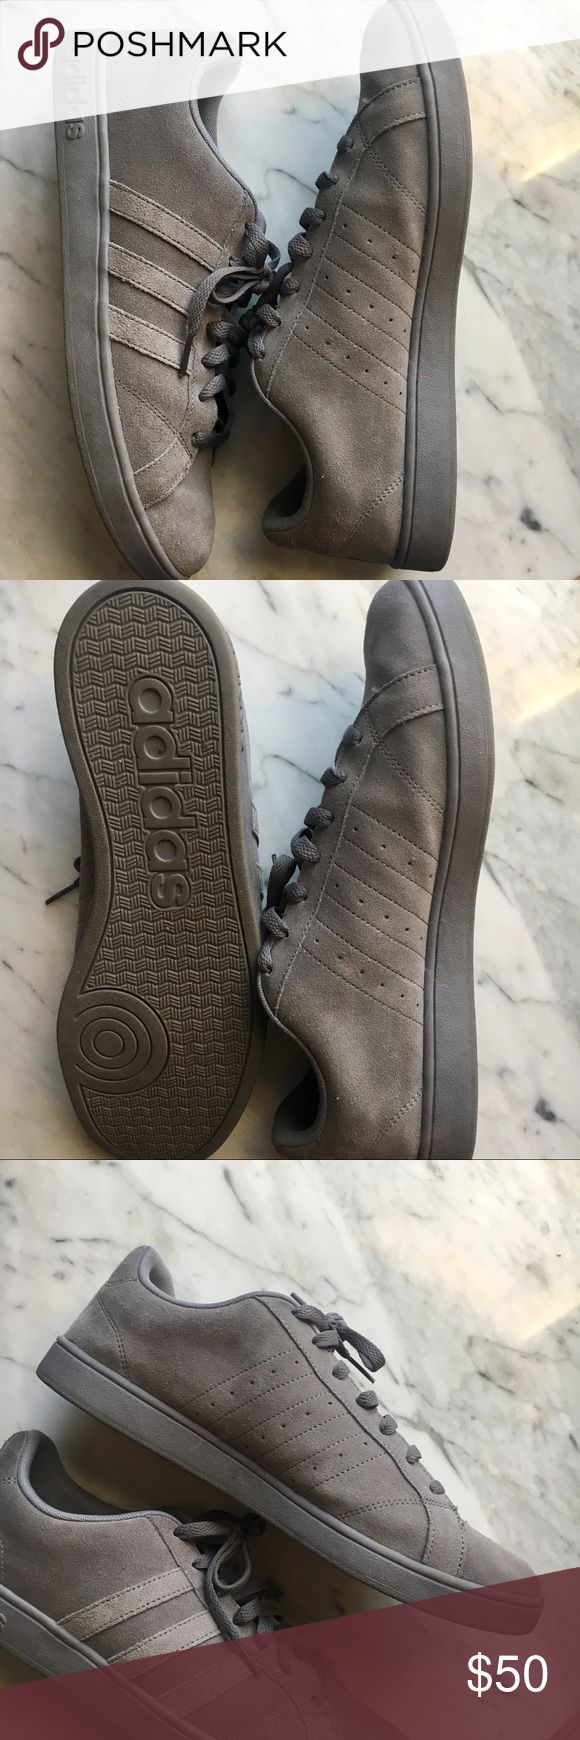 Gray Adidas Neo Sneakers Gently used Adidas sneakers. Ortholite padding on the inside. Worn maybe two or three times. Low cut and very comfortable. Comes without box. adidas Shoes Sneakers